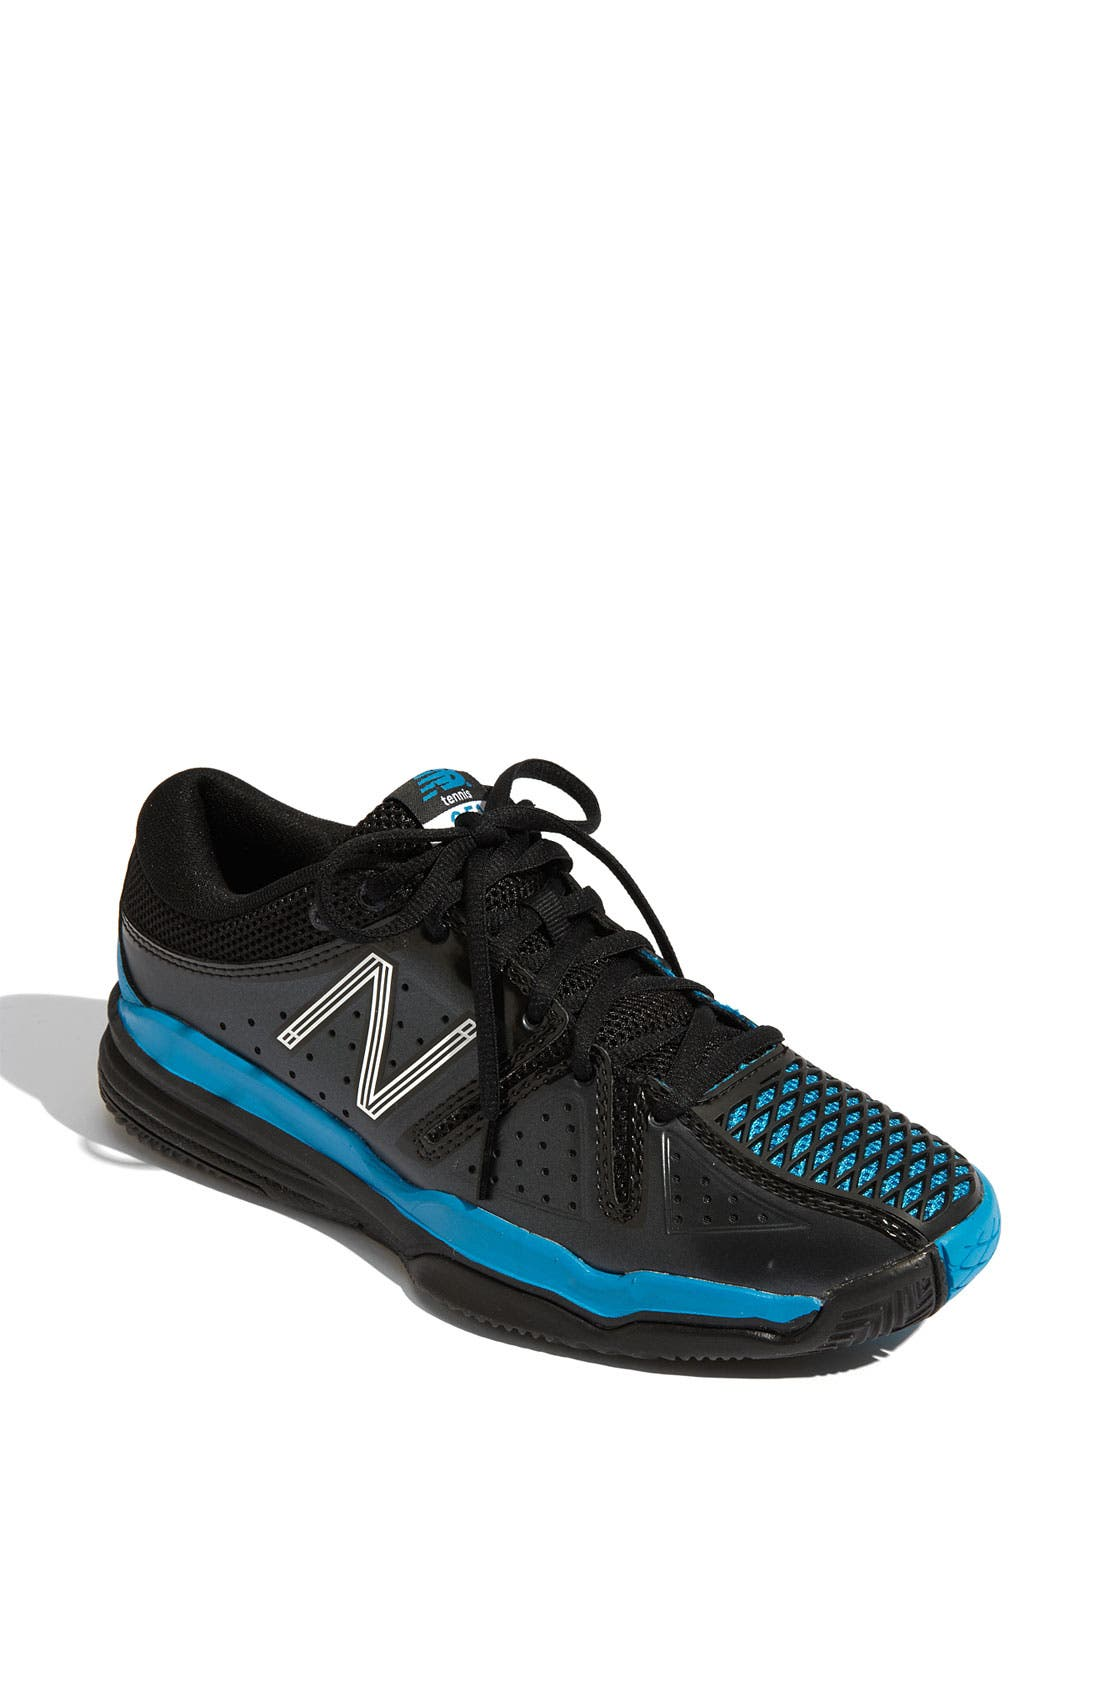 Alternate Image 1 Selected - New Balance '851' Tennis Shoe (Women) (Regular Retail Price: $89.95)